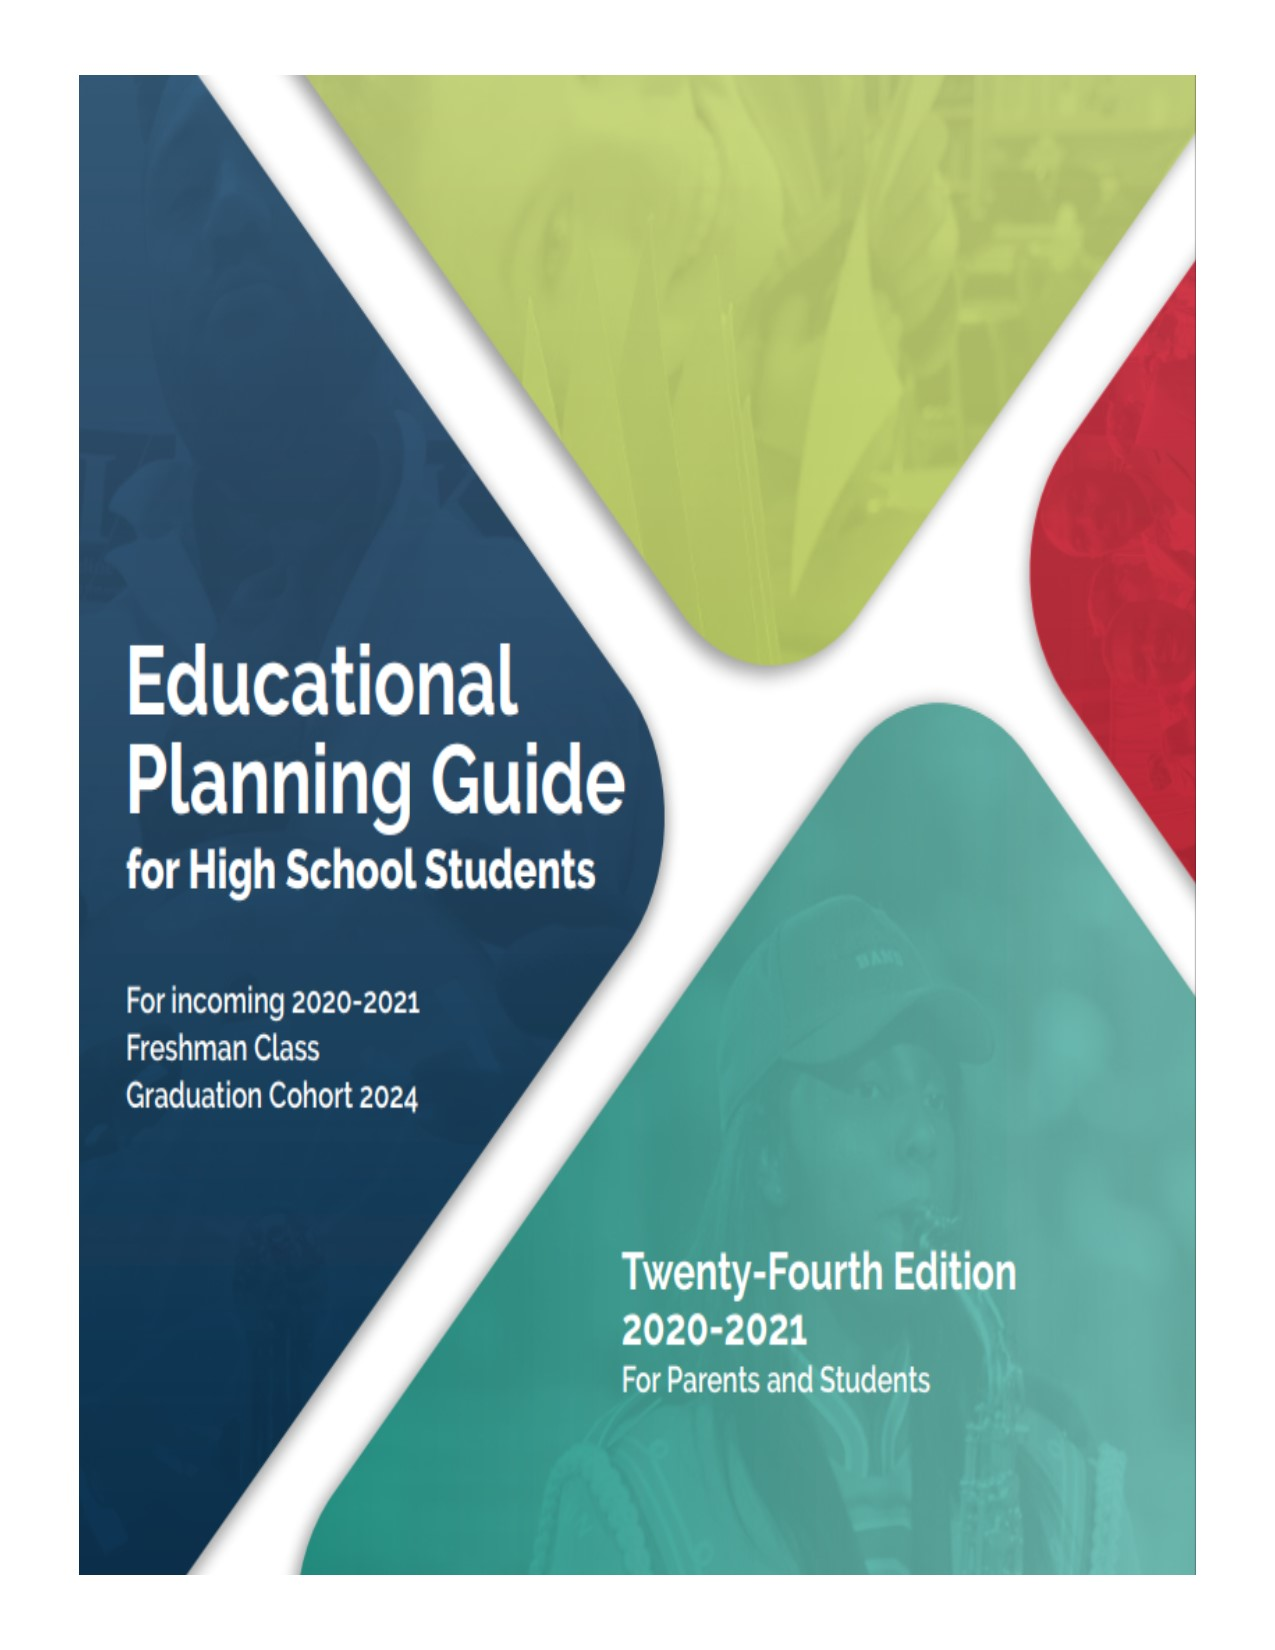 EDUCATIONAL PLANNING GUIDE 2020-2021